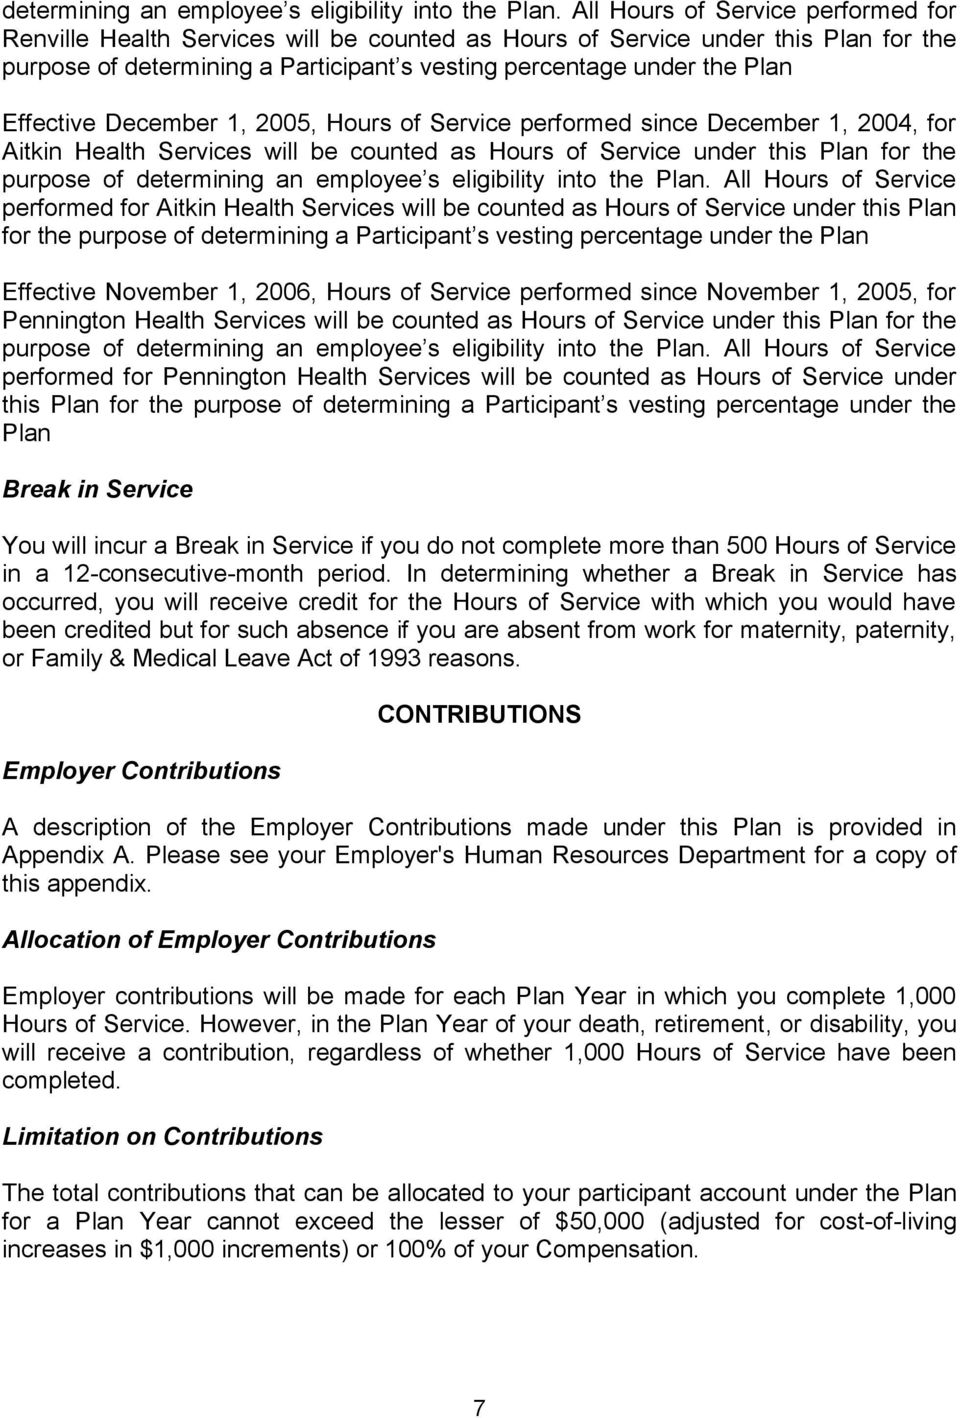 Effective December 1, 2005, Hours of Service performed since December 1, 2004, for Aitkin Health Services will be counted as Hours of Service under this Plan for the purpose of  All Hours of Service